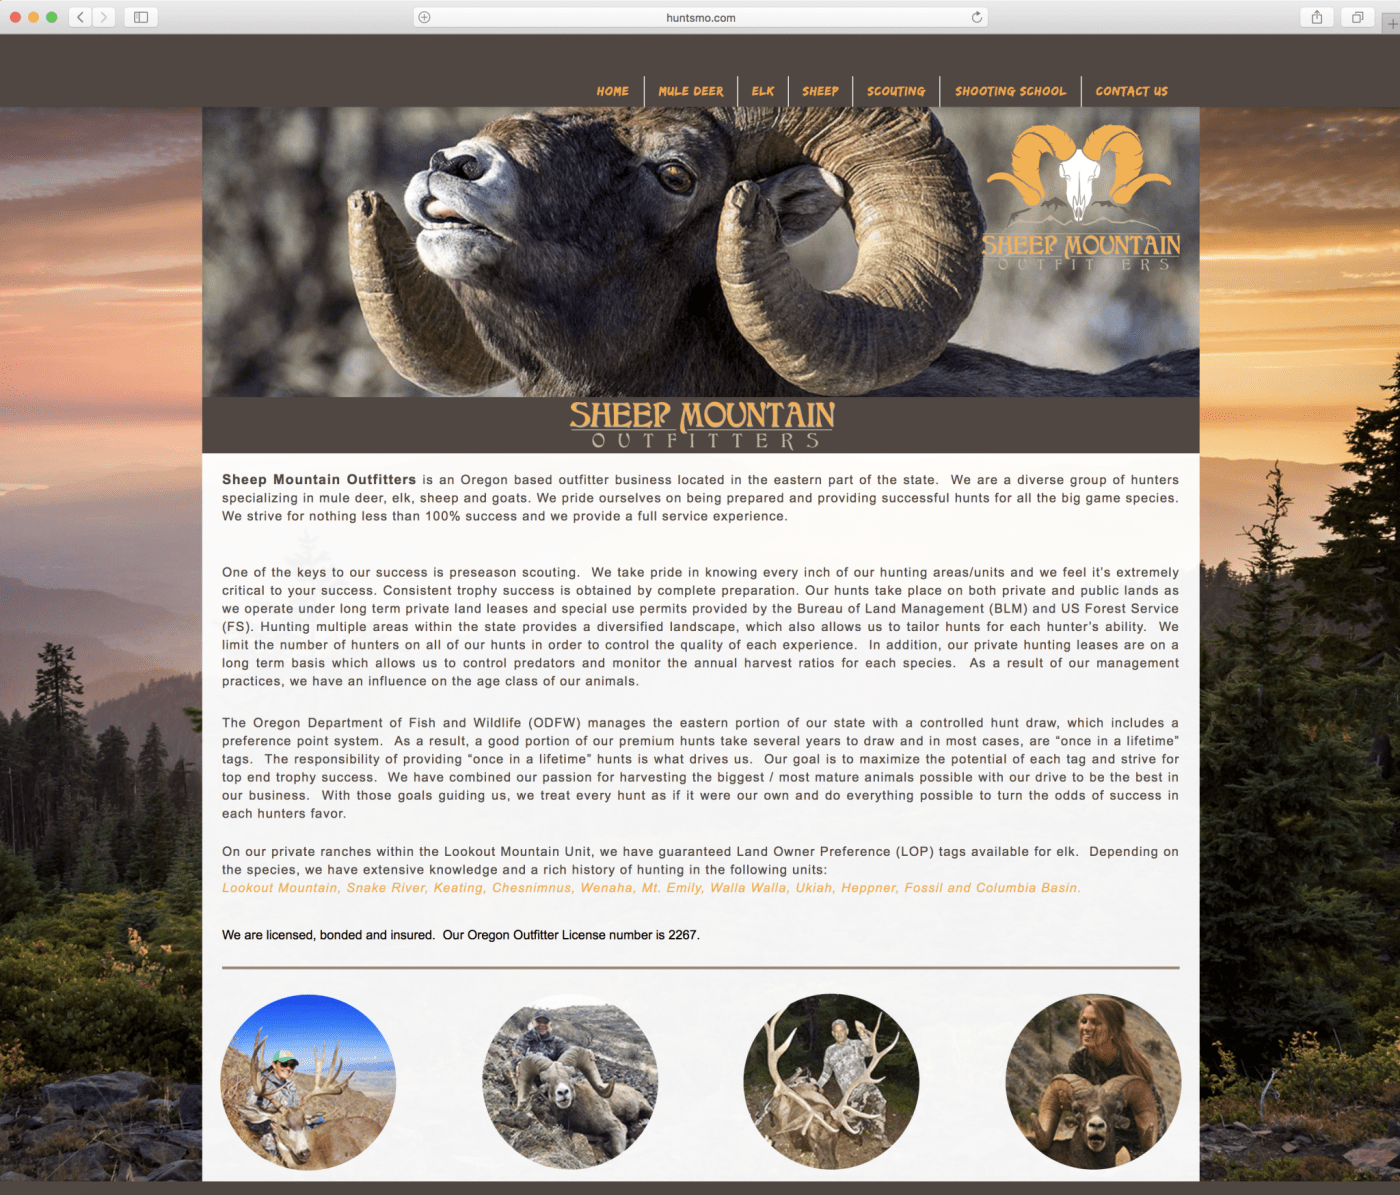 Sheep Mountain Outfitters